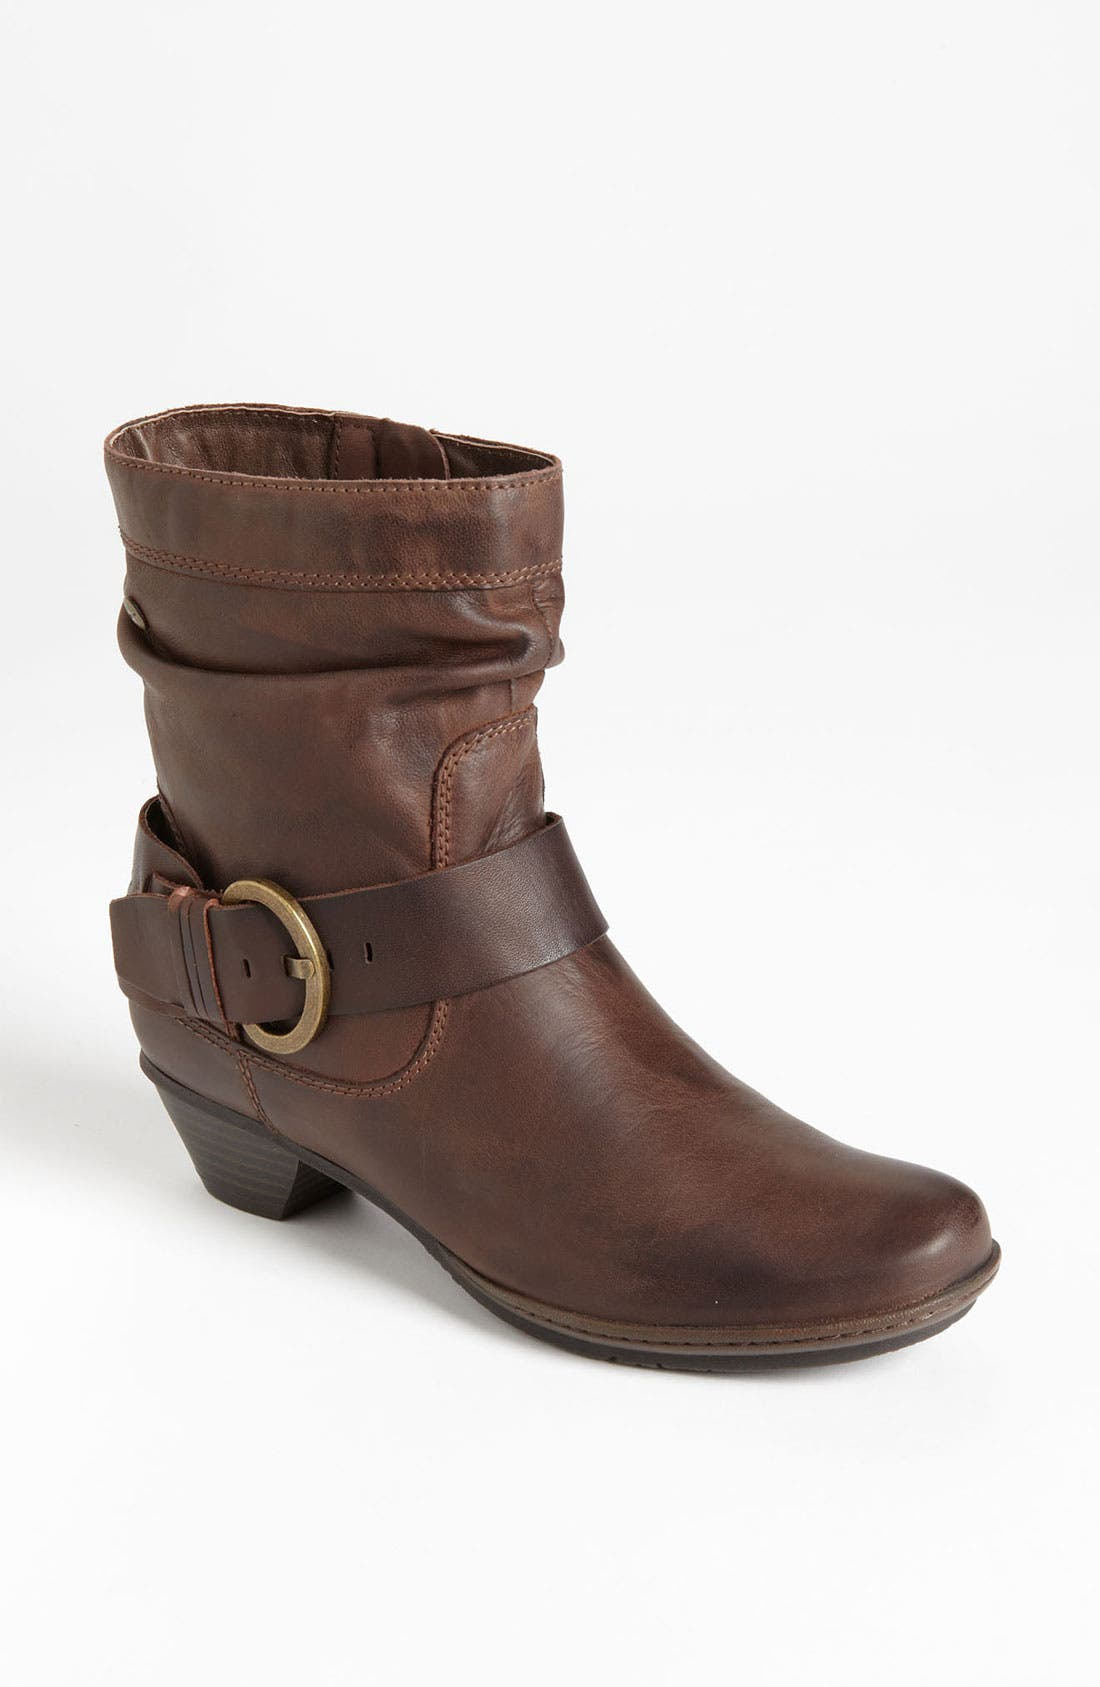 Alternate Image 1 Selected - PIKOLINOS 'Brujas' Ankle Boot (Women)